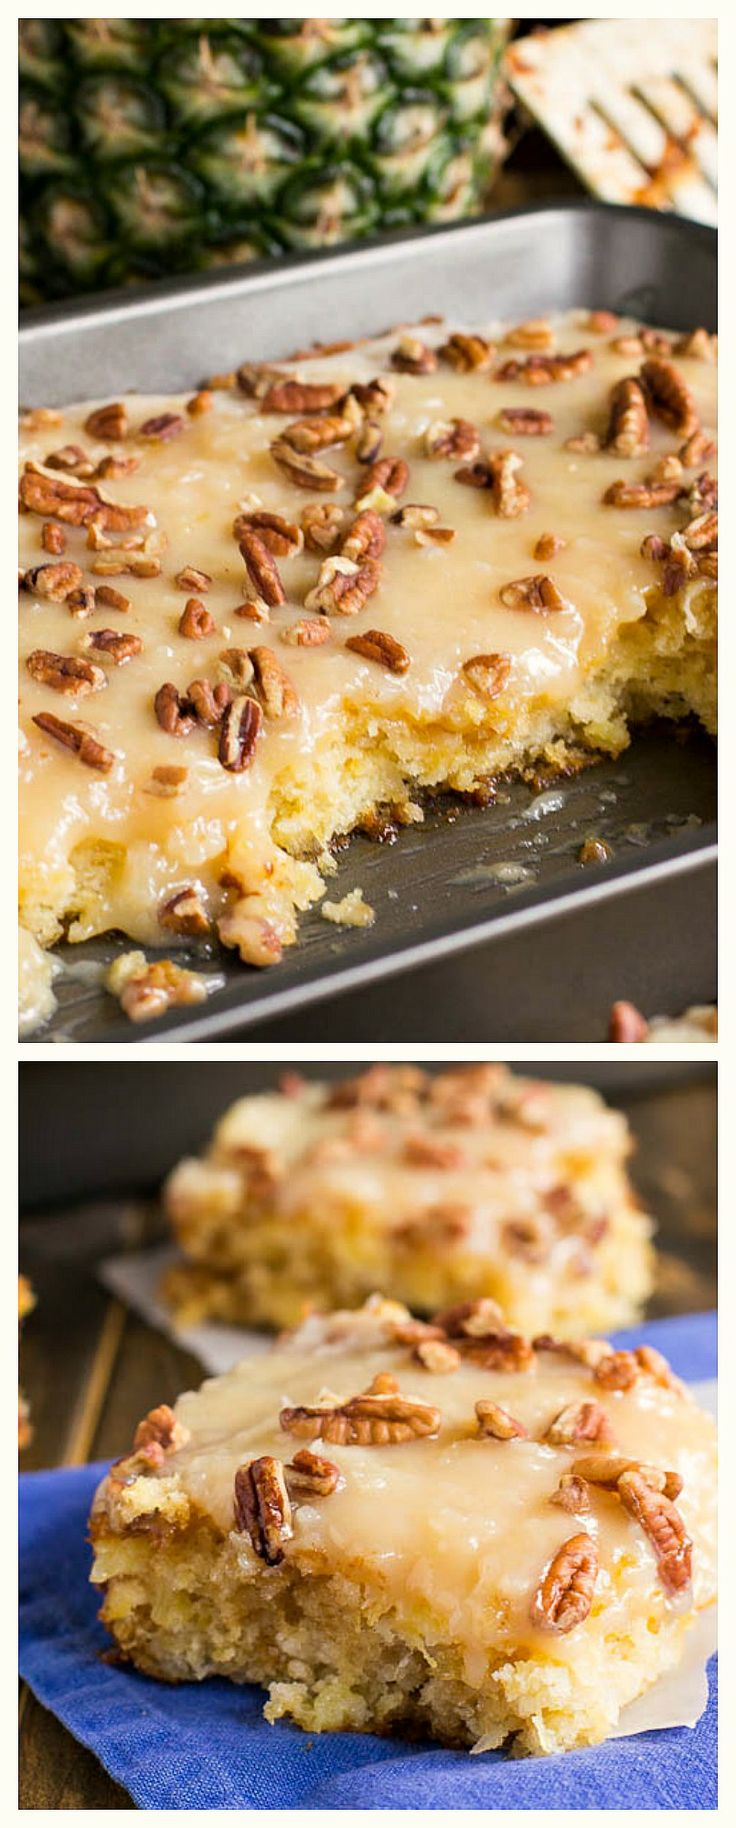 Pineapple Sheet Cake- super moist and covered with a coconut-laced icing. Of course minus the nuts.